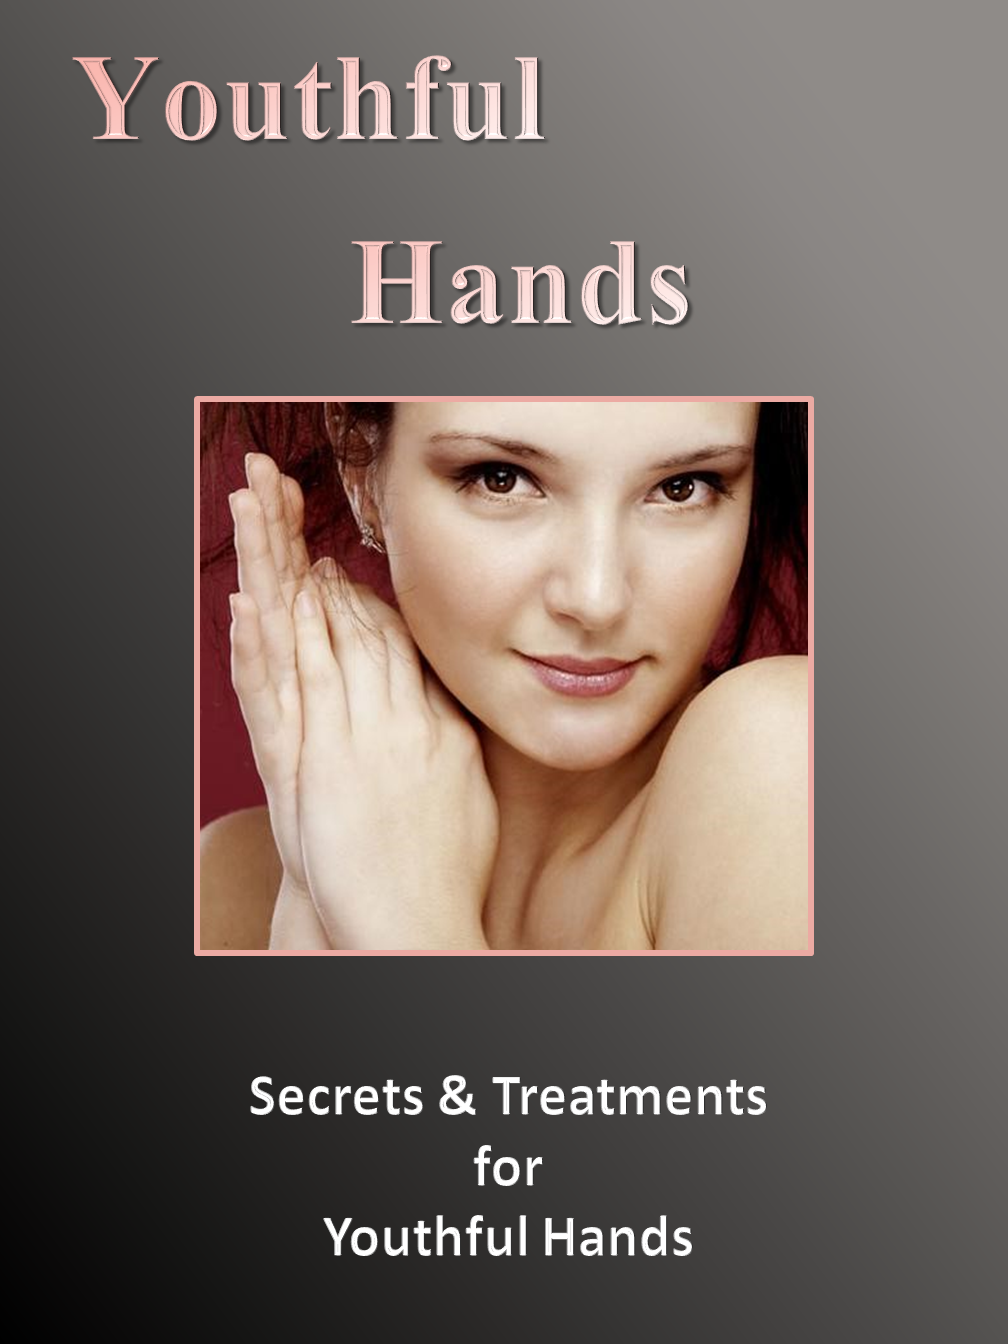 Youthful Hands